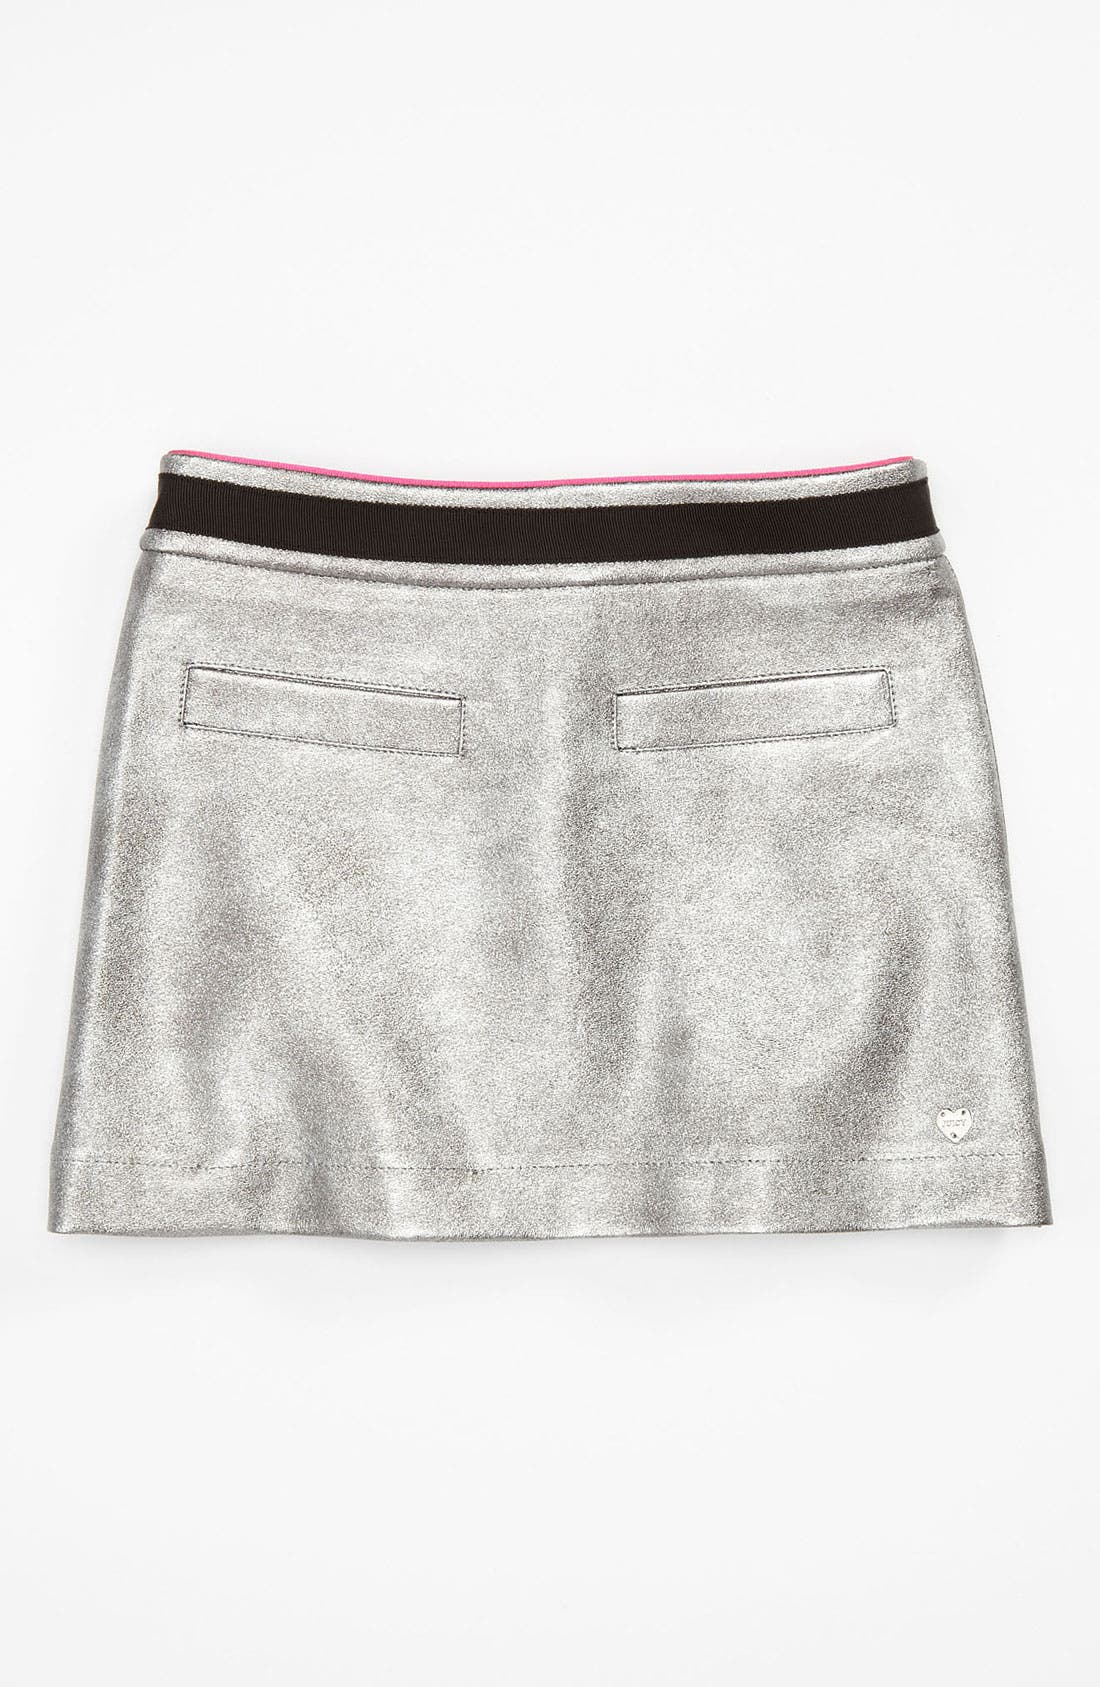 Alternate Image 1 Selected - Juicy Couture Faux Leather Skirt (Little Girls & Big Girls)